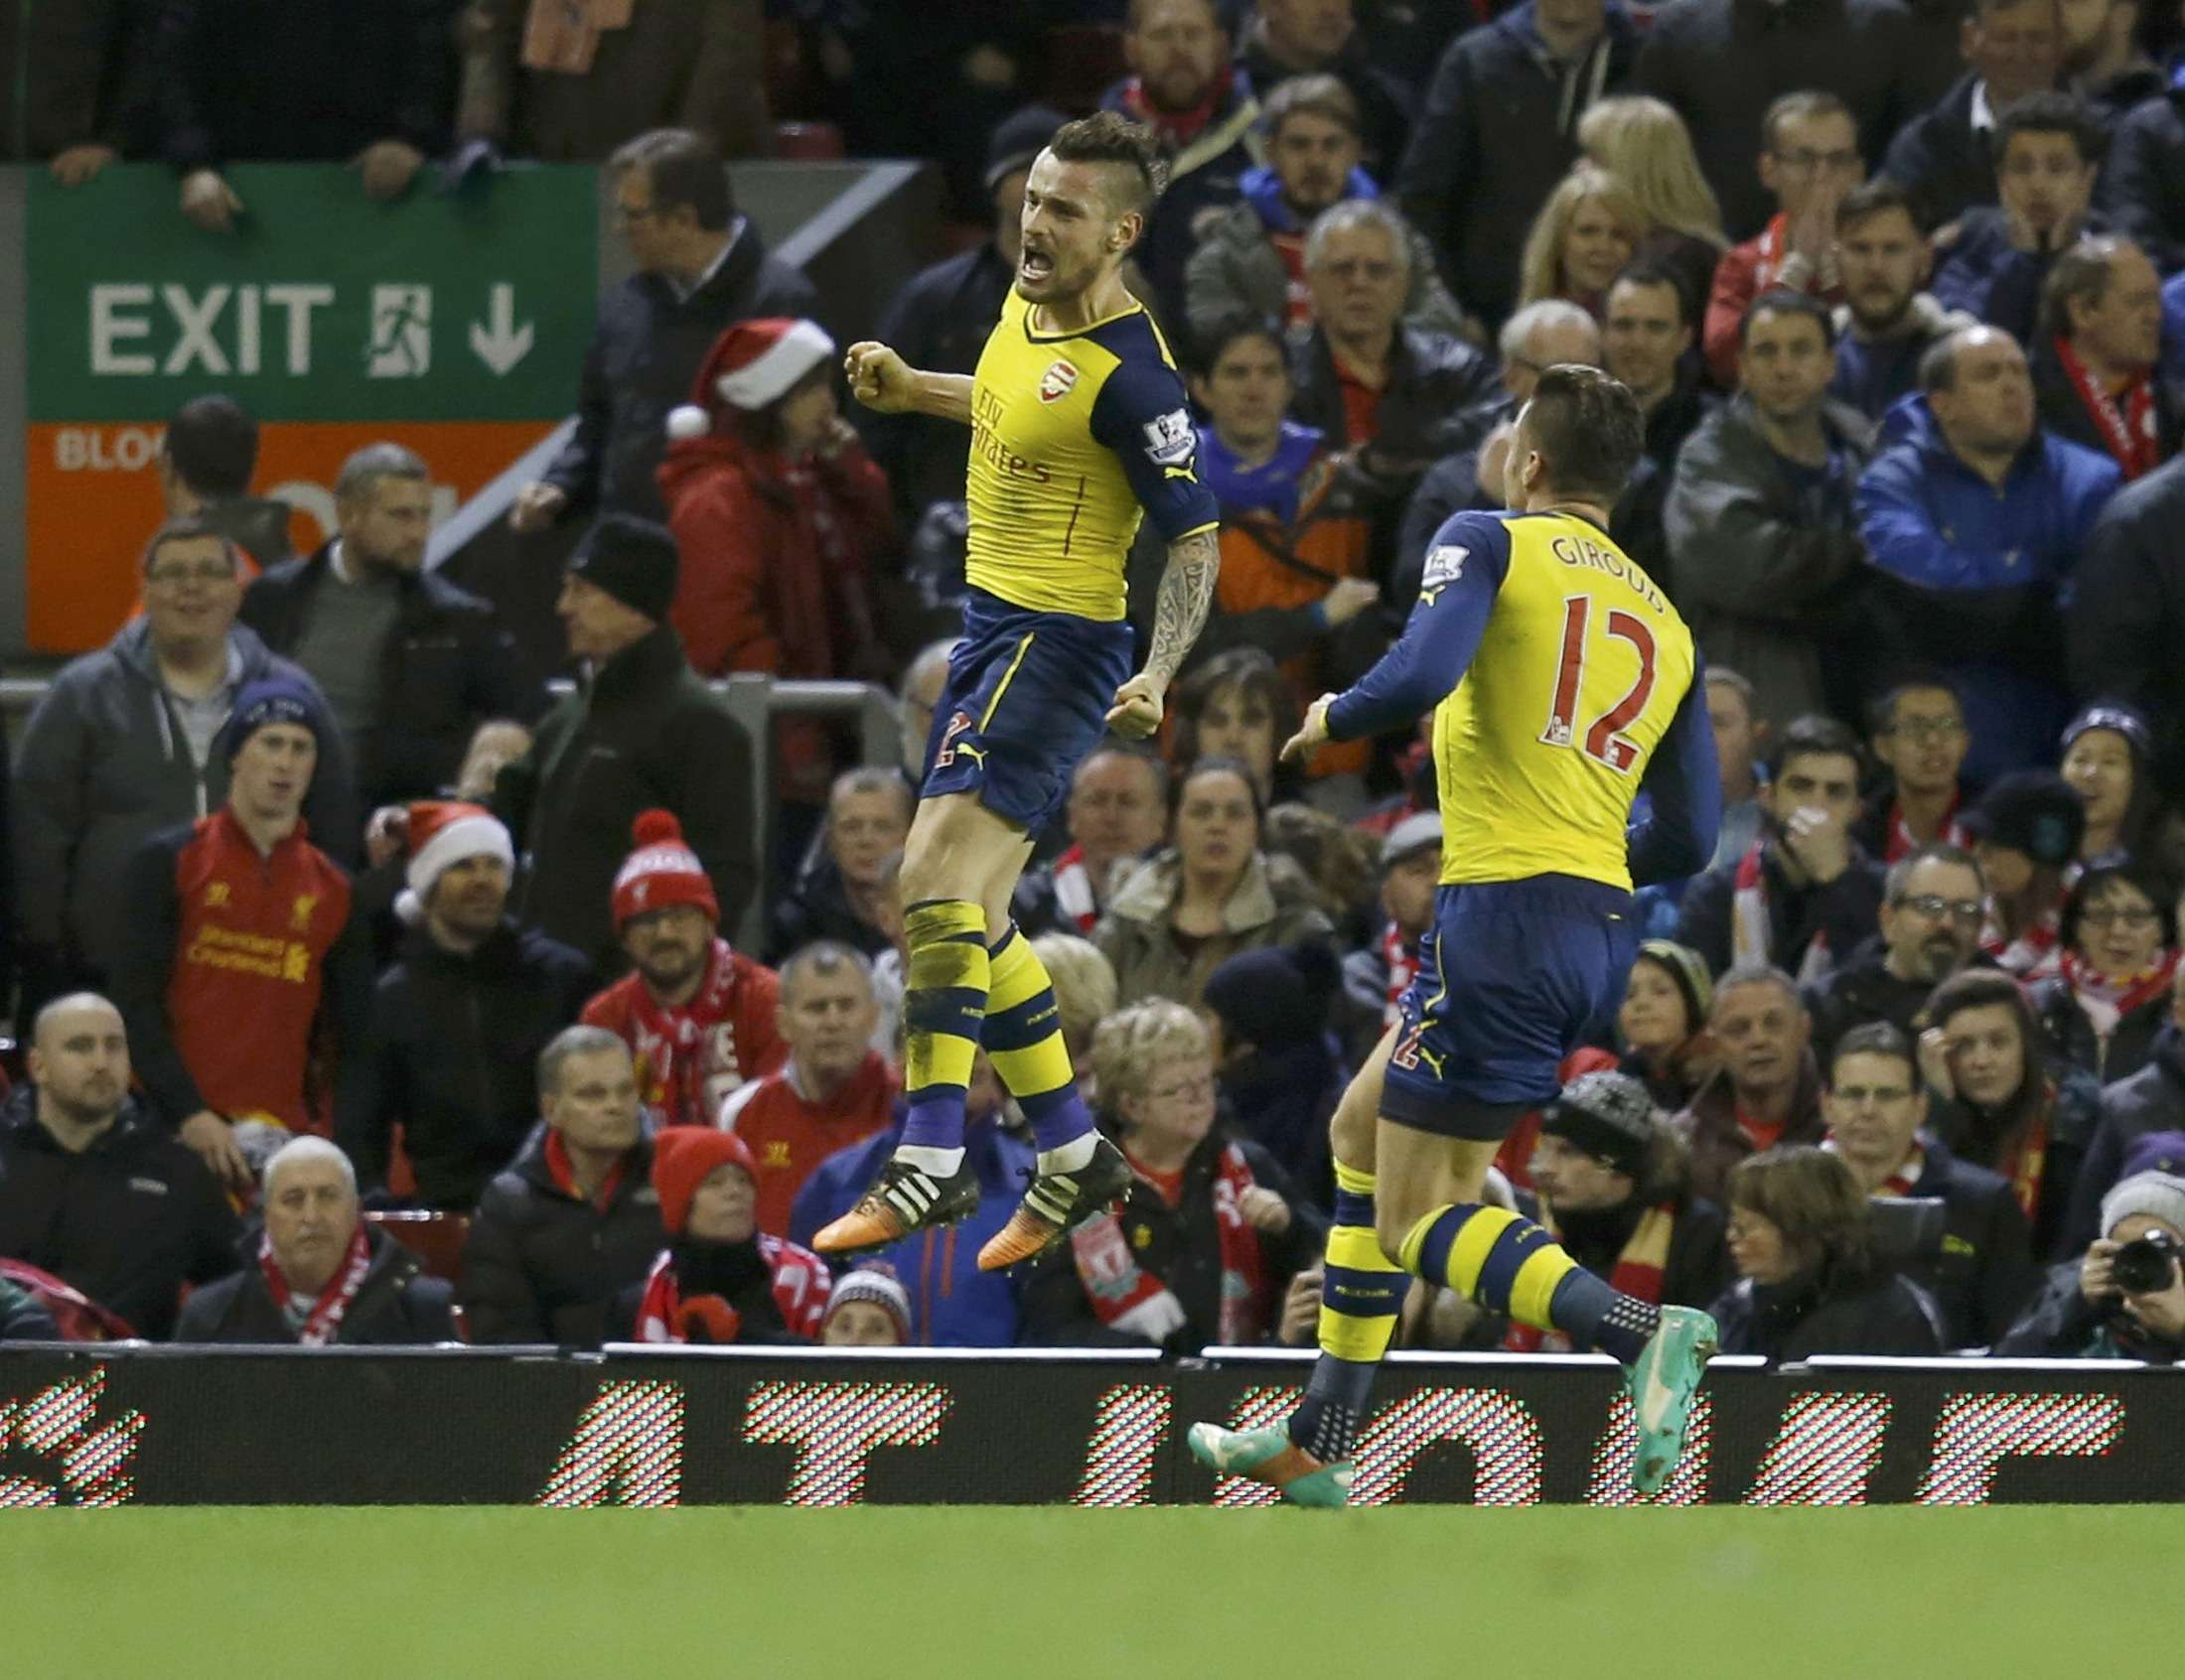 Arsenal's Mathieu Debuchy (L) celebrates after scoring a goal during their English Premier League soccer match against Liverpool at Anfield in Liverpool, northern England December 21, 2014. REUTERS/Phil Noble (BRITAIN - Tags: SOCCER SPORT) FOR EDITORIAL USE ONLY. NOT FOR SALE FOR MARKETING OR ADVERTISING CAMPAIGNS. EDITORIAL USE ONLY. NO USE WITH UNAUTHORIZED AUDIO, VIDEO, DATA, FIXTURE LISTS, CLUB/LEAGUE LOGOS OR 'LIVE' SERVICES. ONLINE IN-MATCH USE LIMITED TO 45 IMAGES, NO VIDEO EMULATION. NO USE IN BETTING, GAMES OR SINGLE CLUB/LEAGUE/PLAYER PUBLICATIONS. Foto: PHIL NOBLE/REUTERS